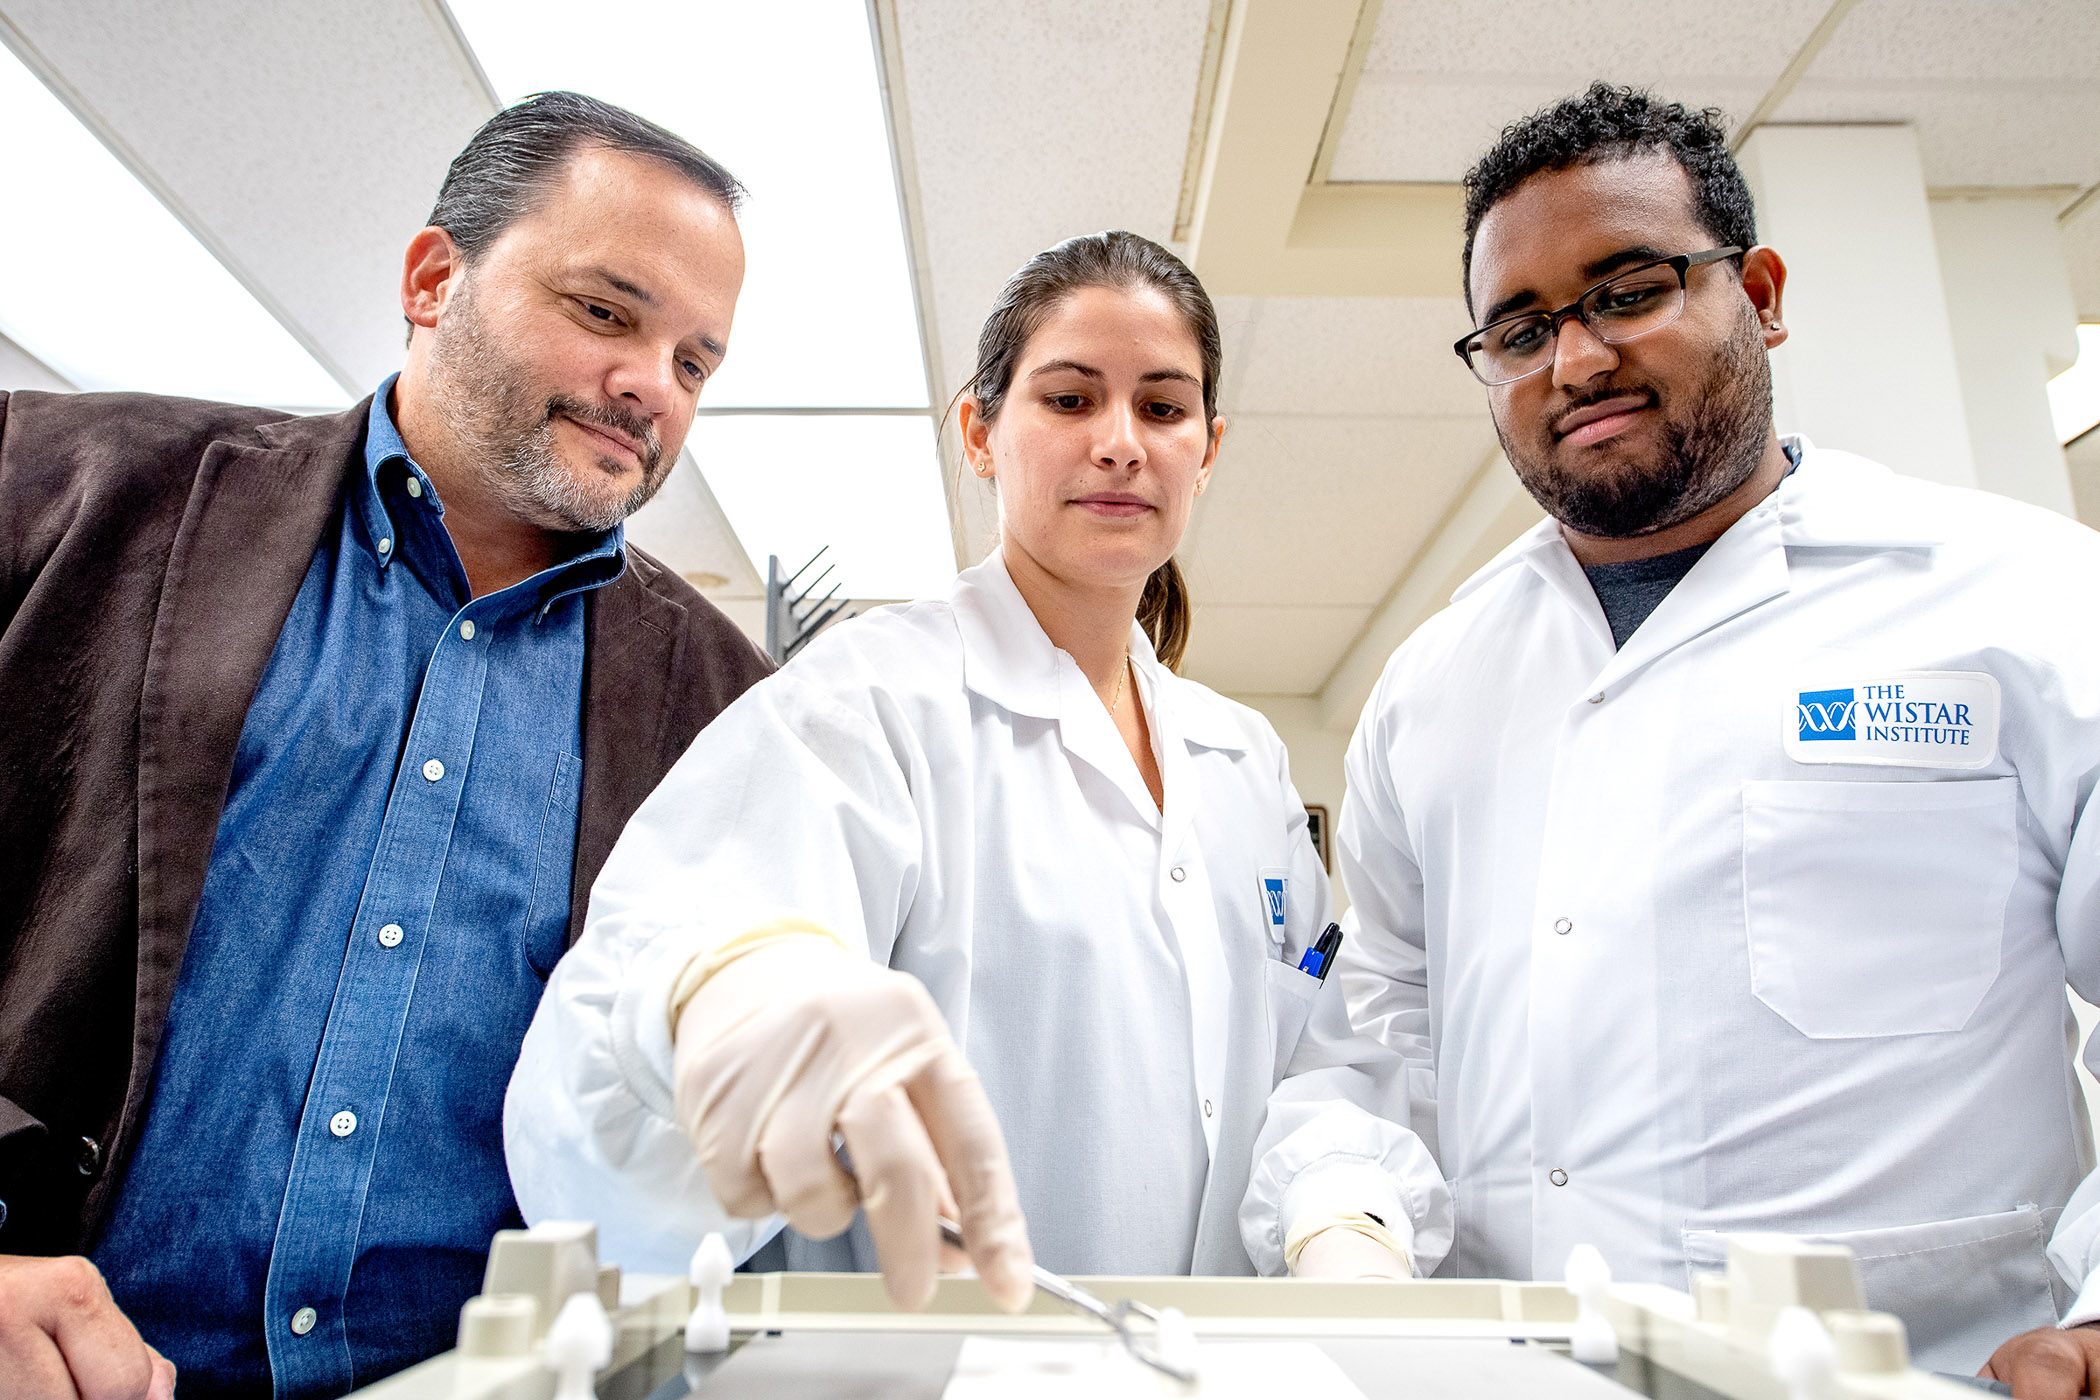 Dr. Luis Montaner and scientists in his lab fine-tune an assay.